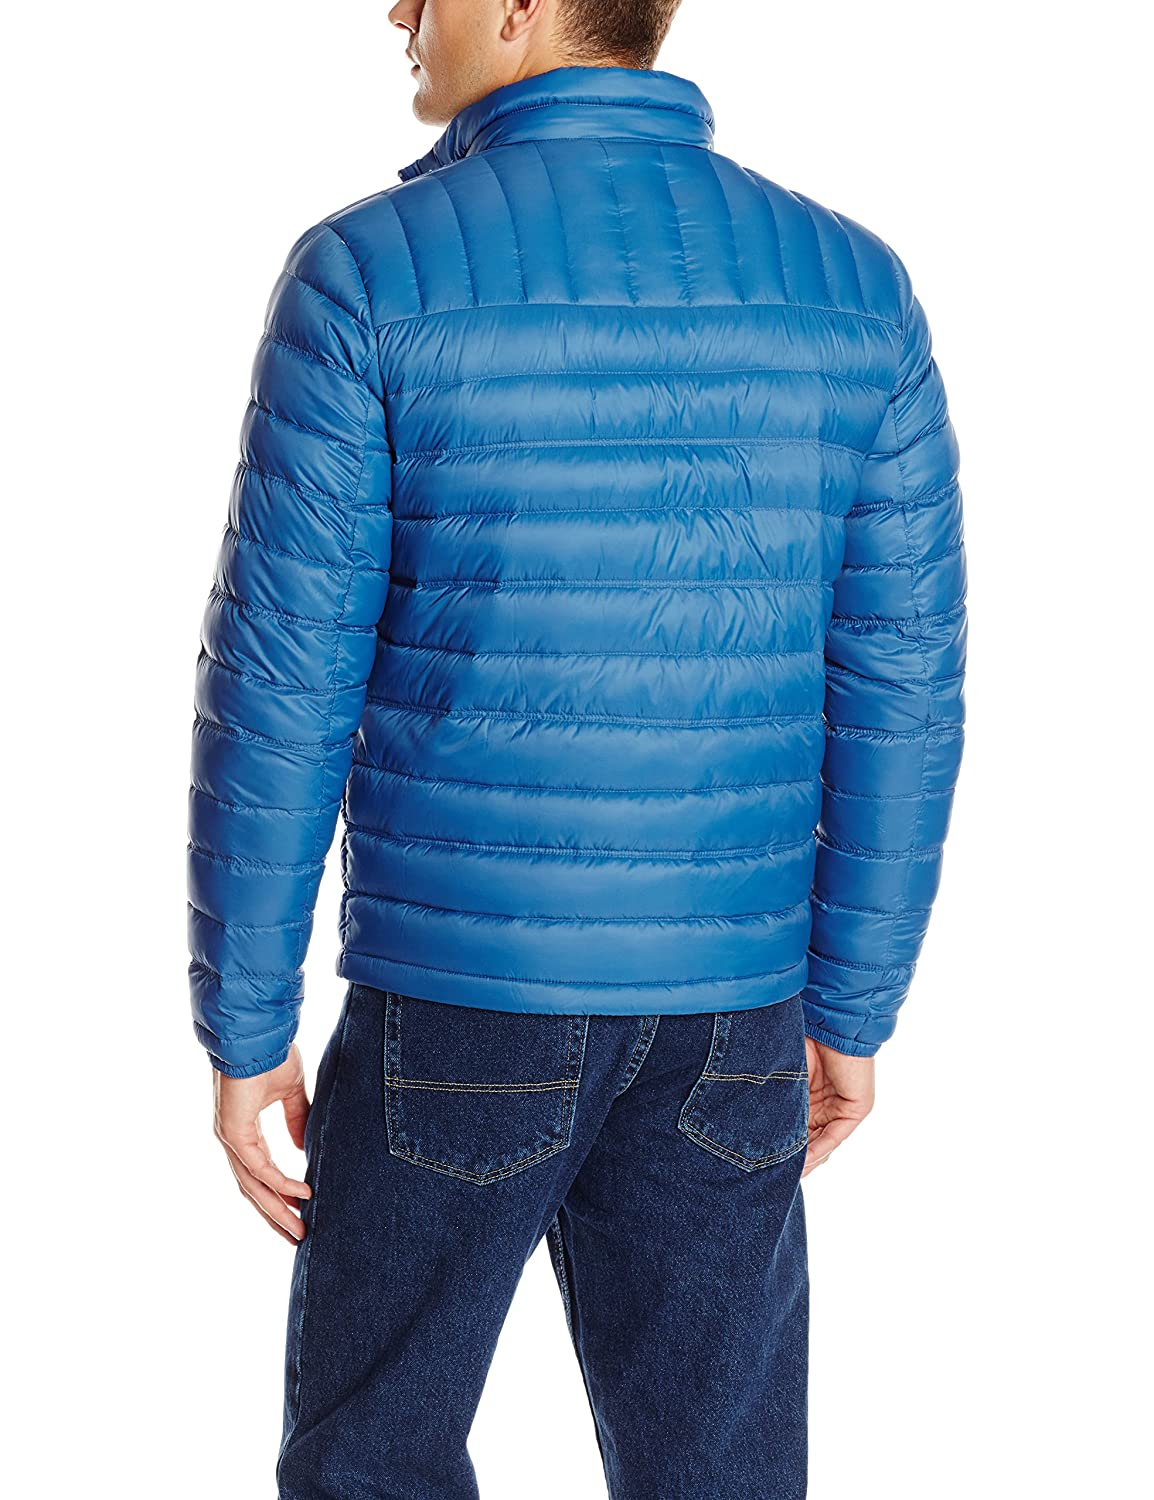 Tommy Hilfiger Mens Packable Down Jacket Regular and Big /& Tall Sizes